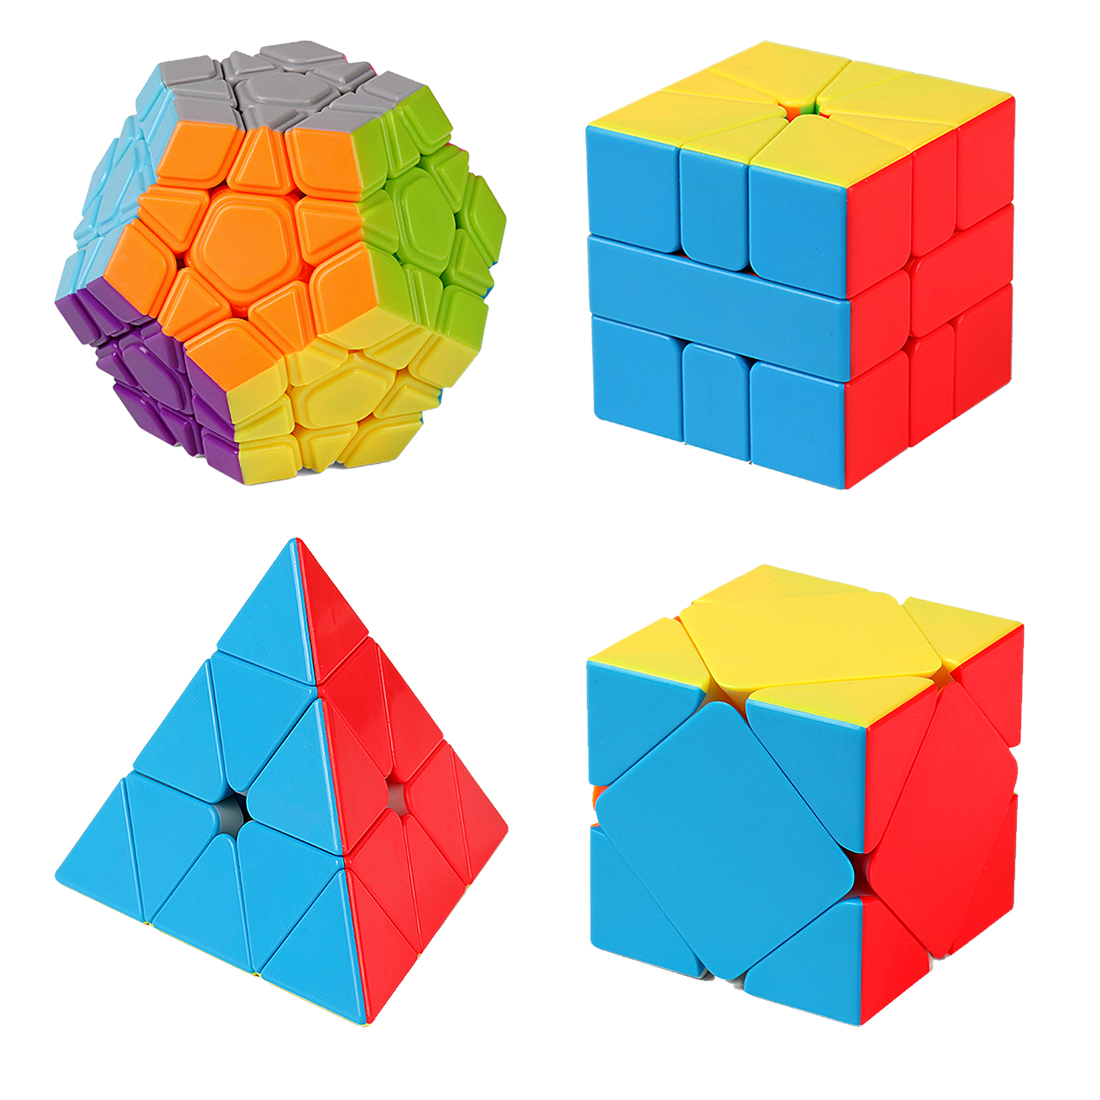 4pcs/set Cubing Classroom WCA Official Competition Cube Gift Set Magic Cube Brain Teaser Puzzle Toy - Colorful yj8305 3x3x3 three layers magic cube puzzle toy